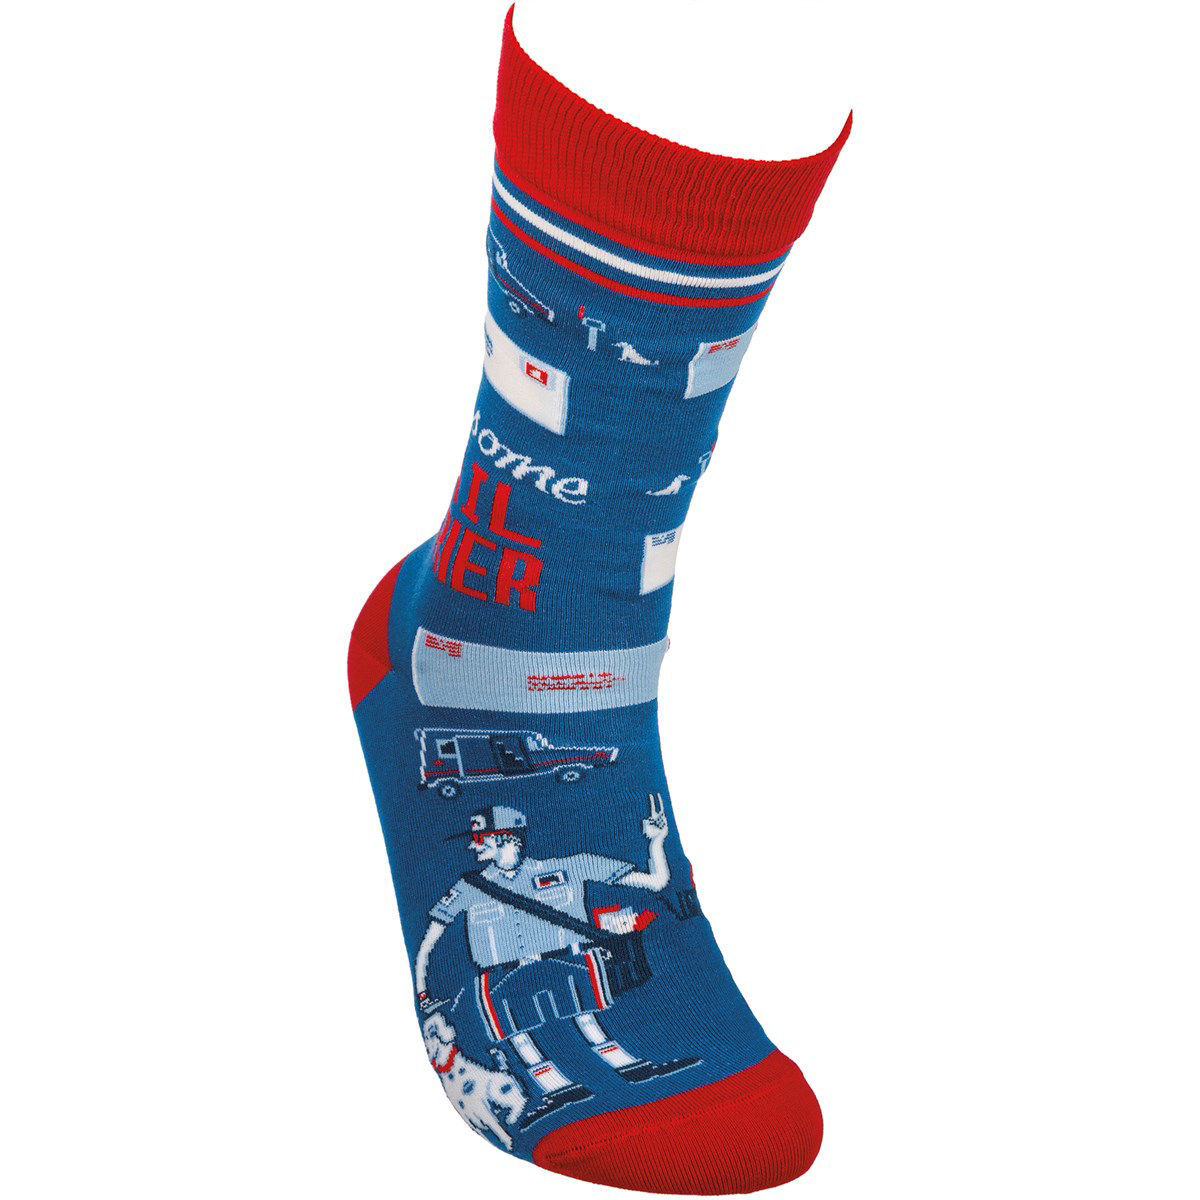 Awesome Mail Carrier Socks by Primitives by Kathy